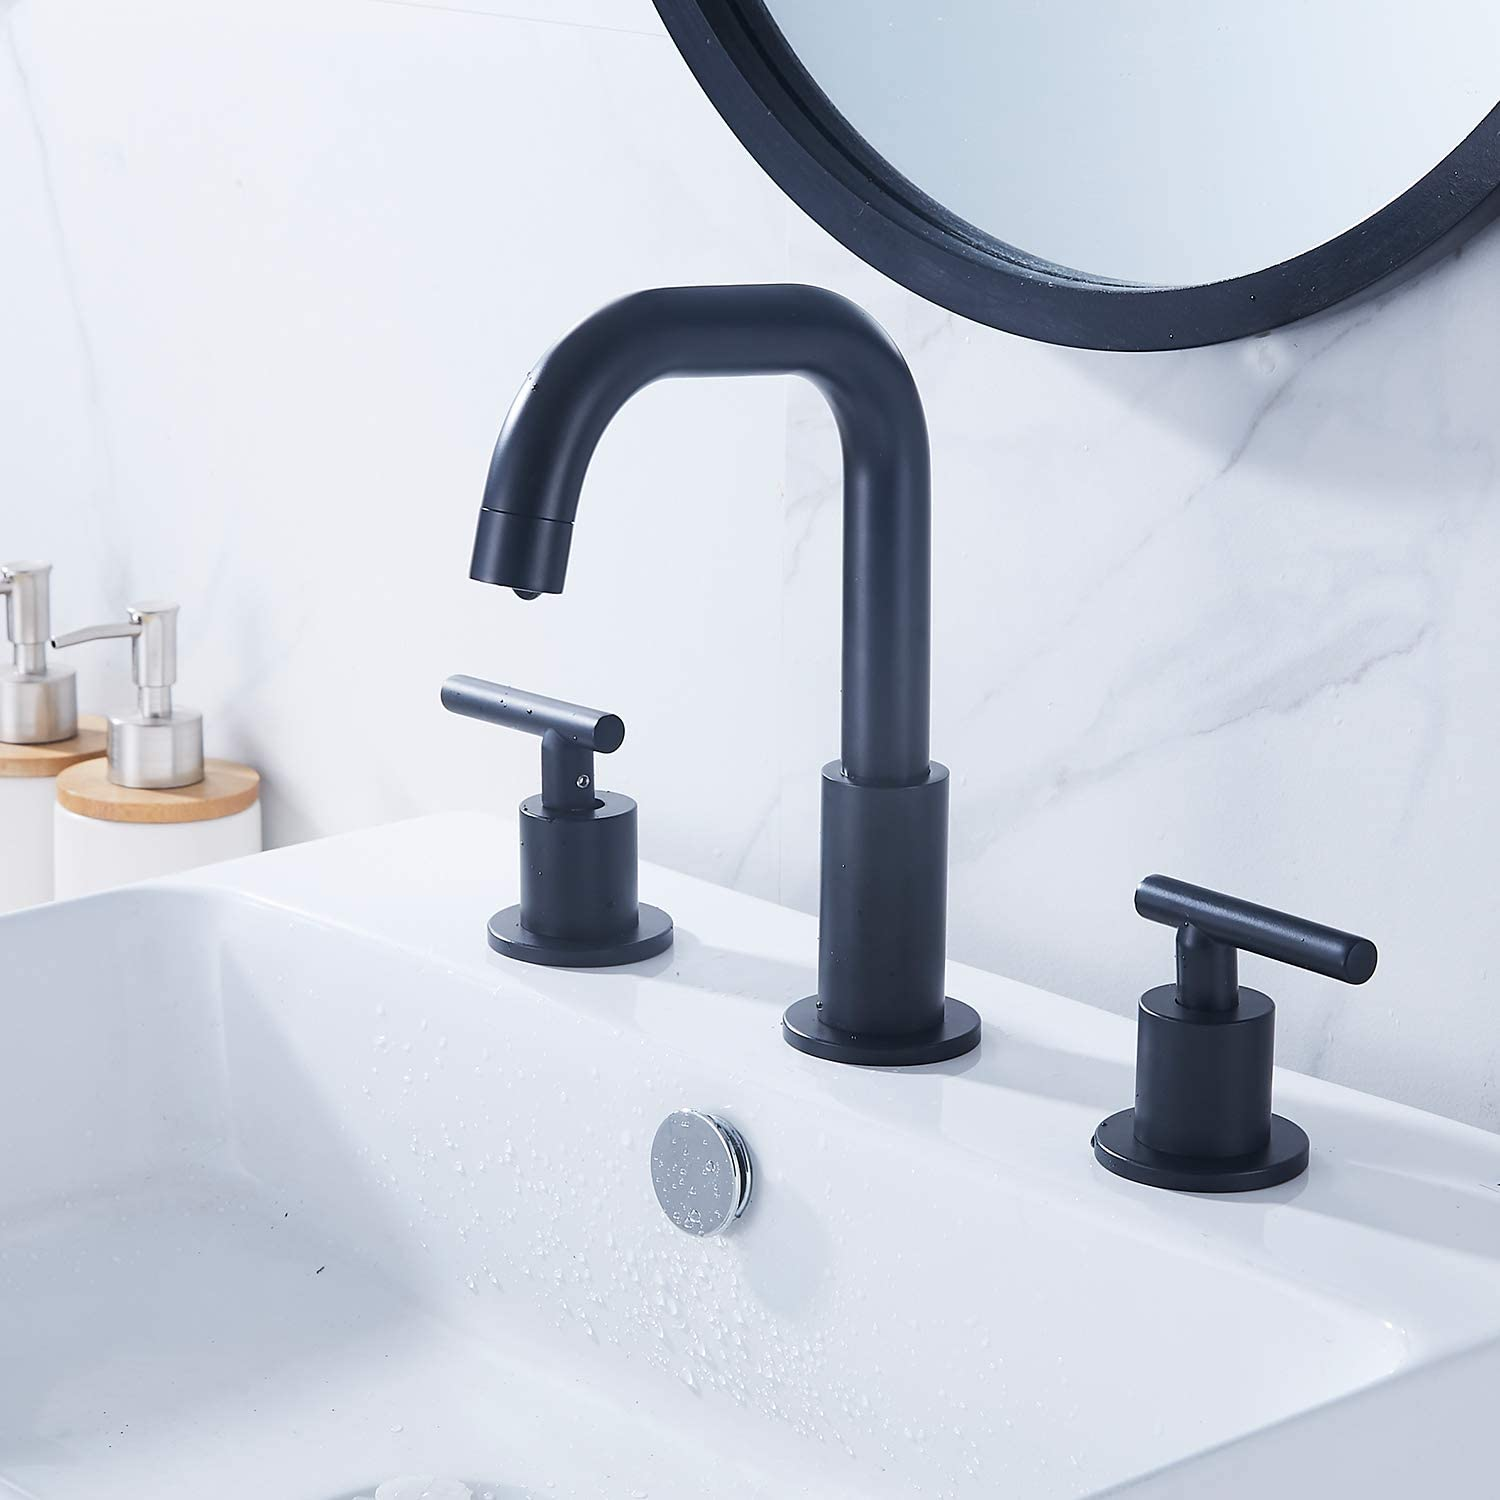 GGStudy 360/° Swivel Spout 2 Handles 3 Holes 8inch Widespread Bathroom Sink Faucet Antique Brass Matching with Pop Up Drain Bathroom Vanity Faucet